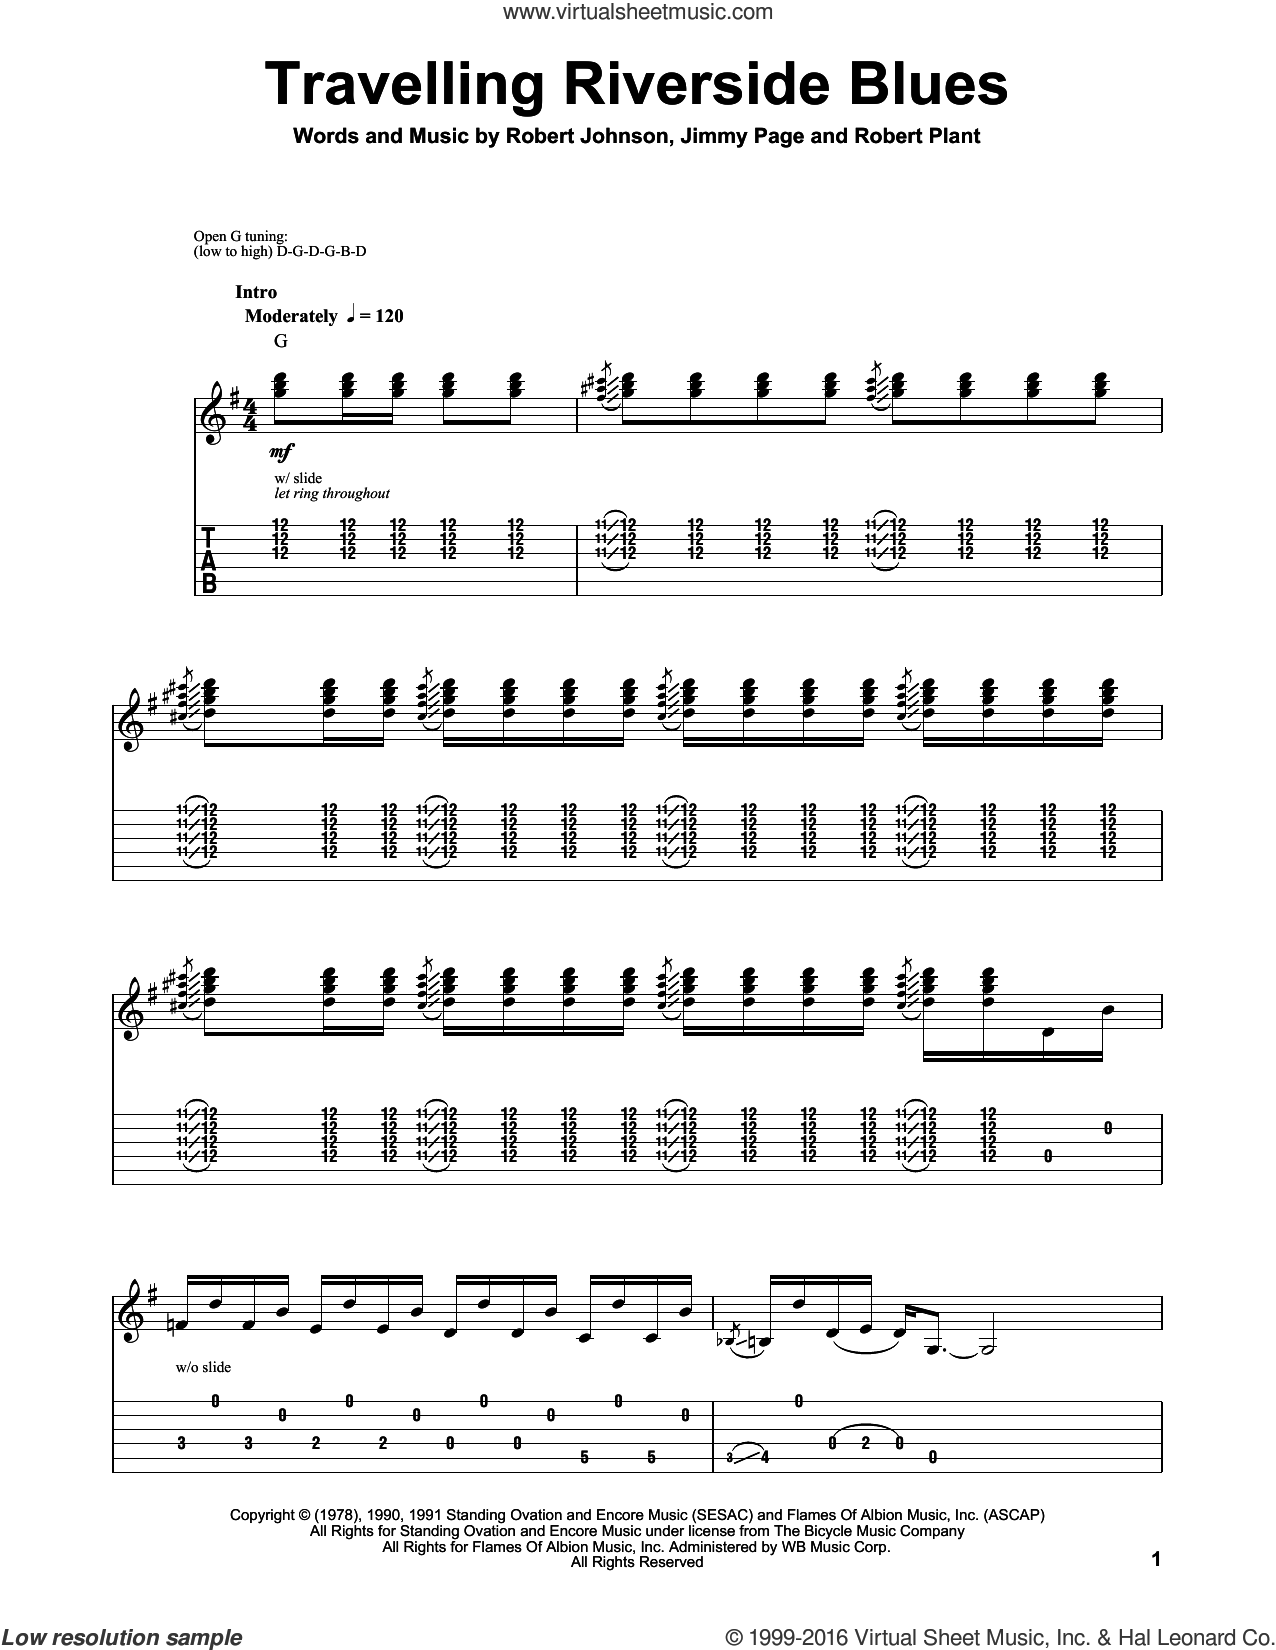 Travelling Riverside Blues sheet music for guitar (tablature, play-along) by Robert Plant, Led Zeppelin, Jimmy Page and Robert Johnson. Score Image Preview.